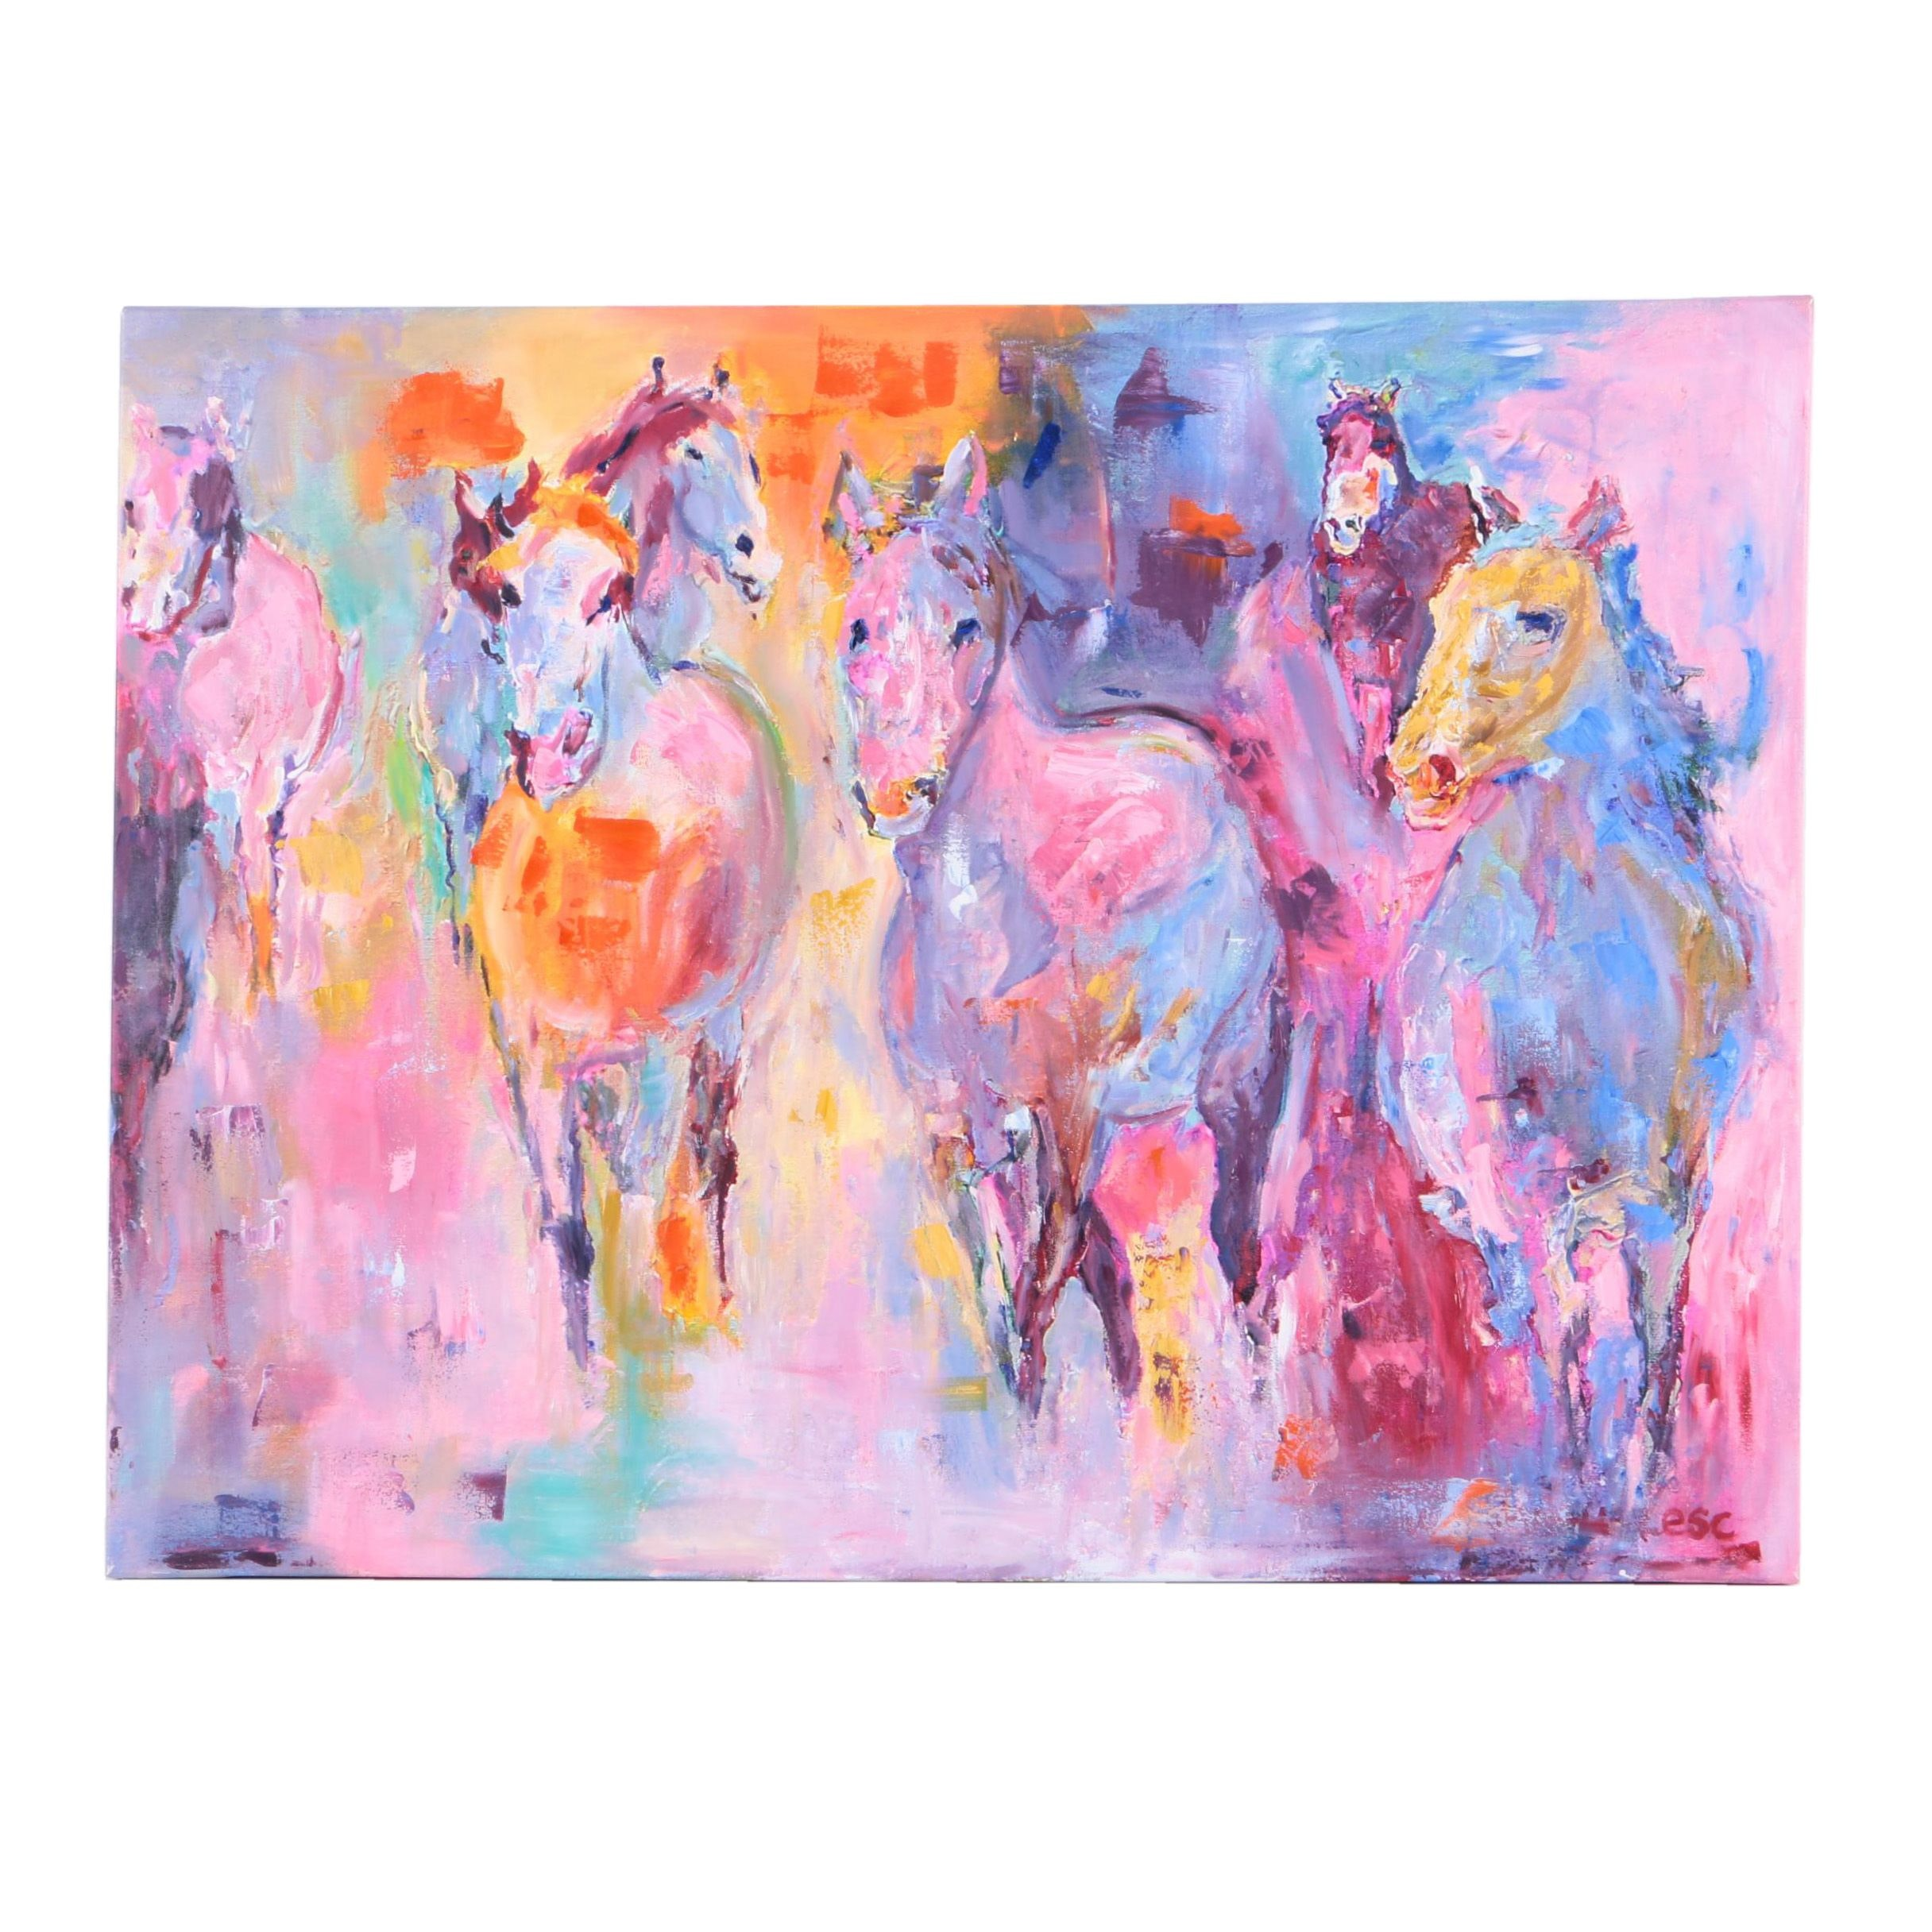 Embellished Giclee Print on Canvas of Horses